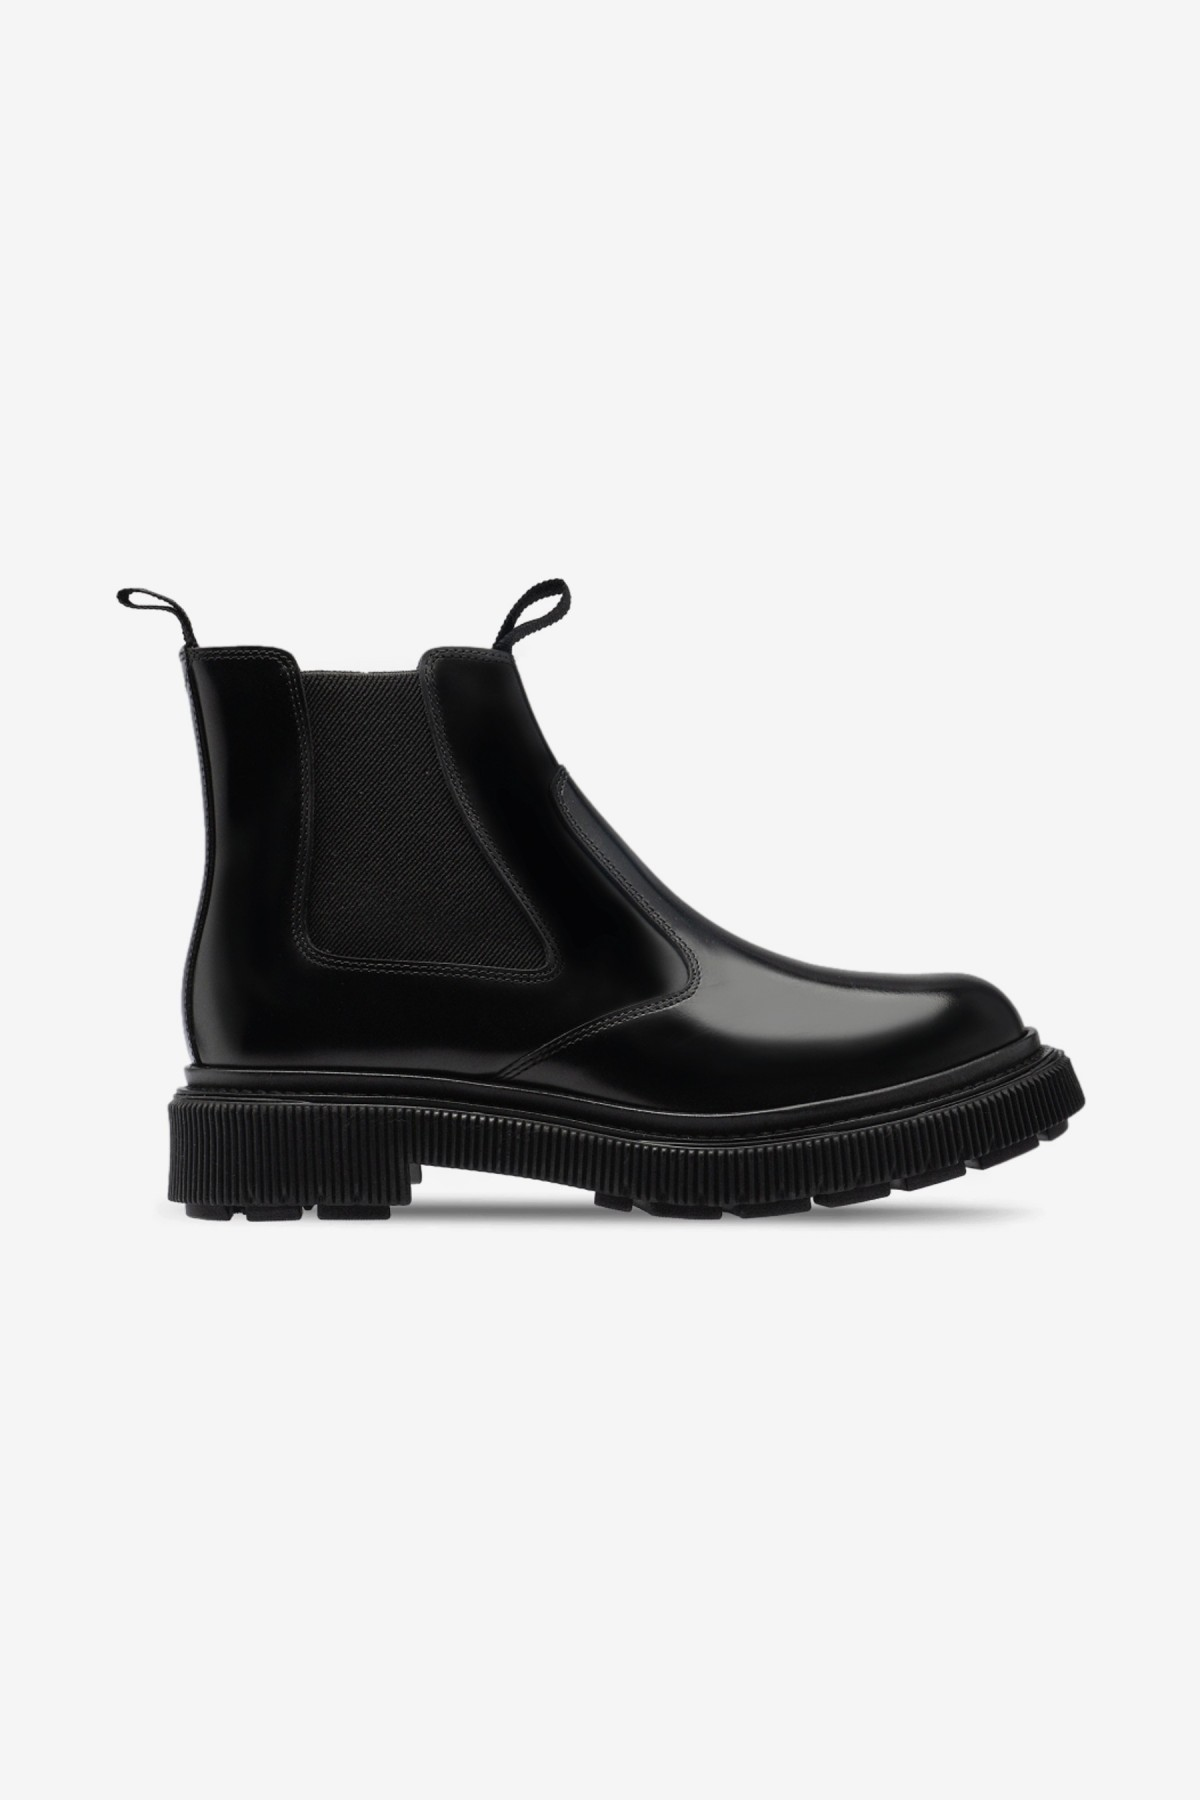 Adieu Type 156 Chelsea Boots in Black